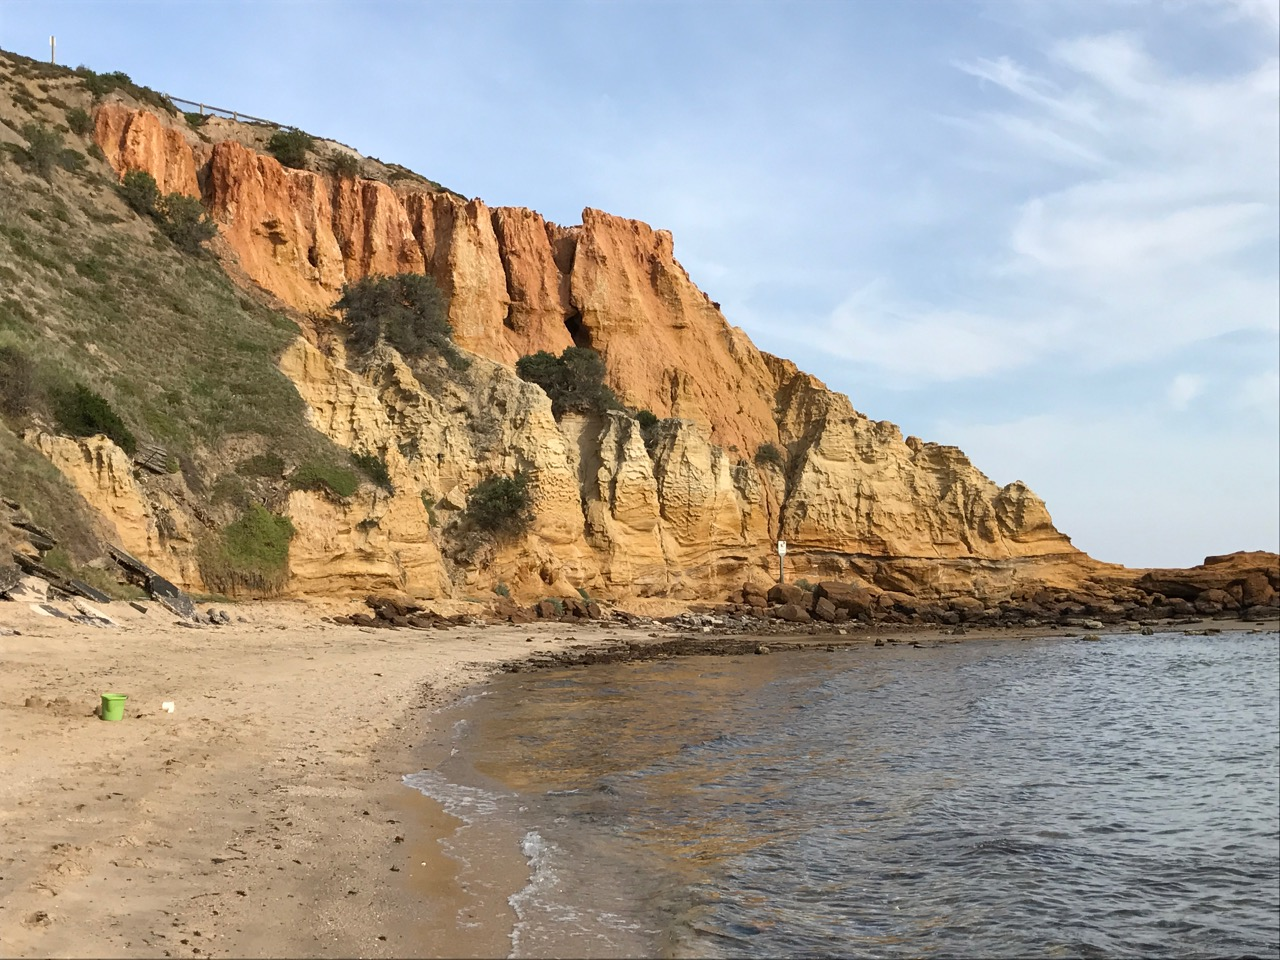 Red Bluff viewed from the beach.